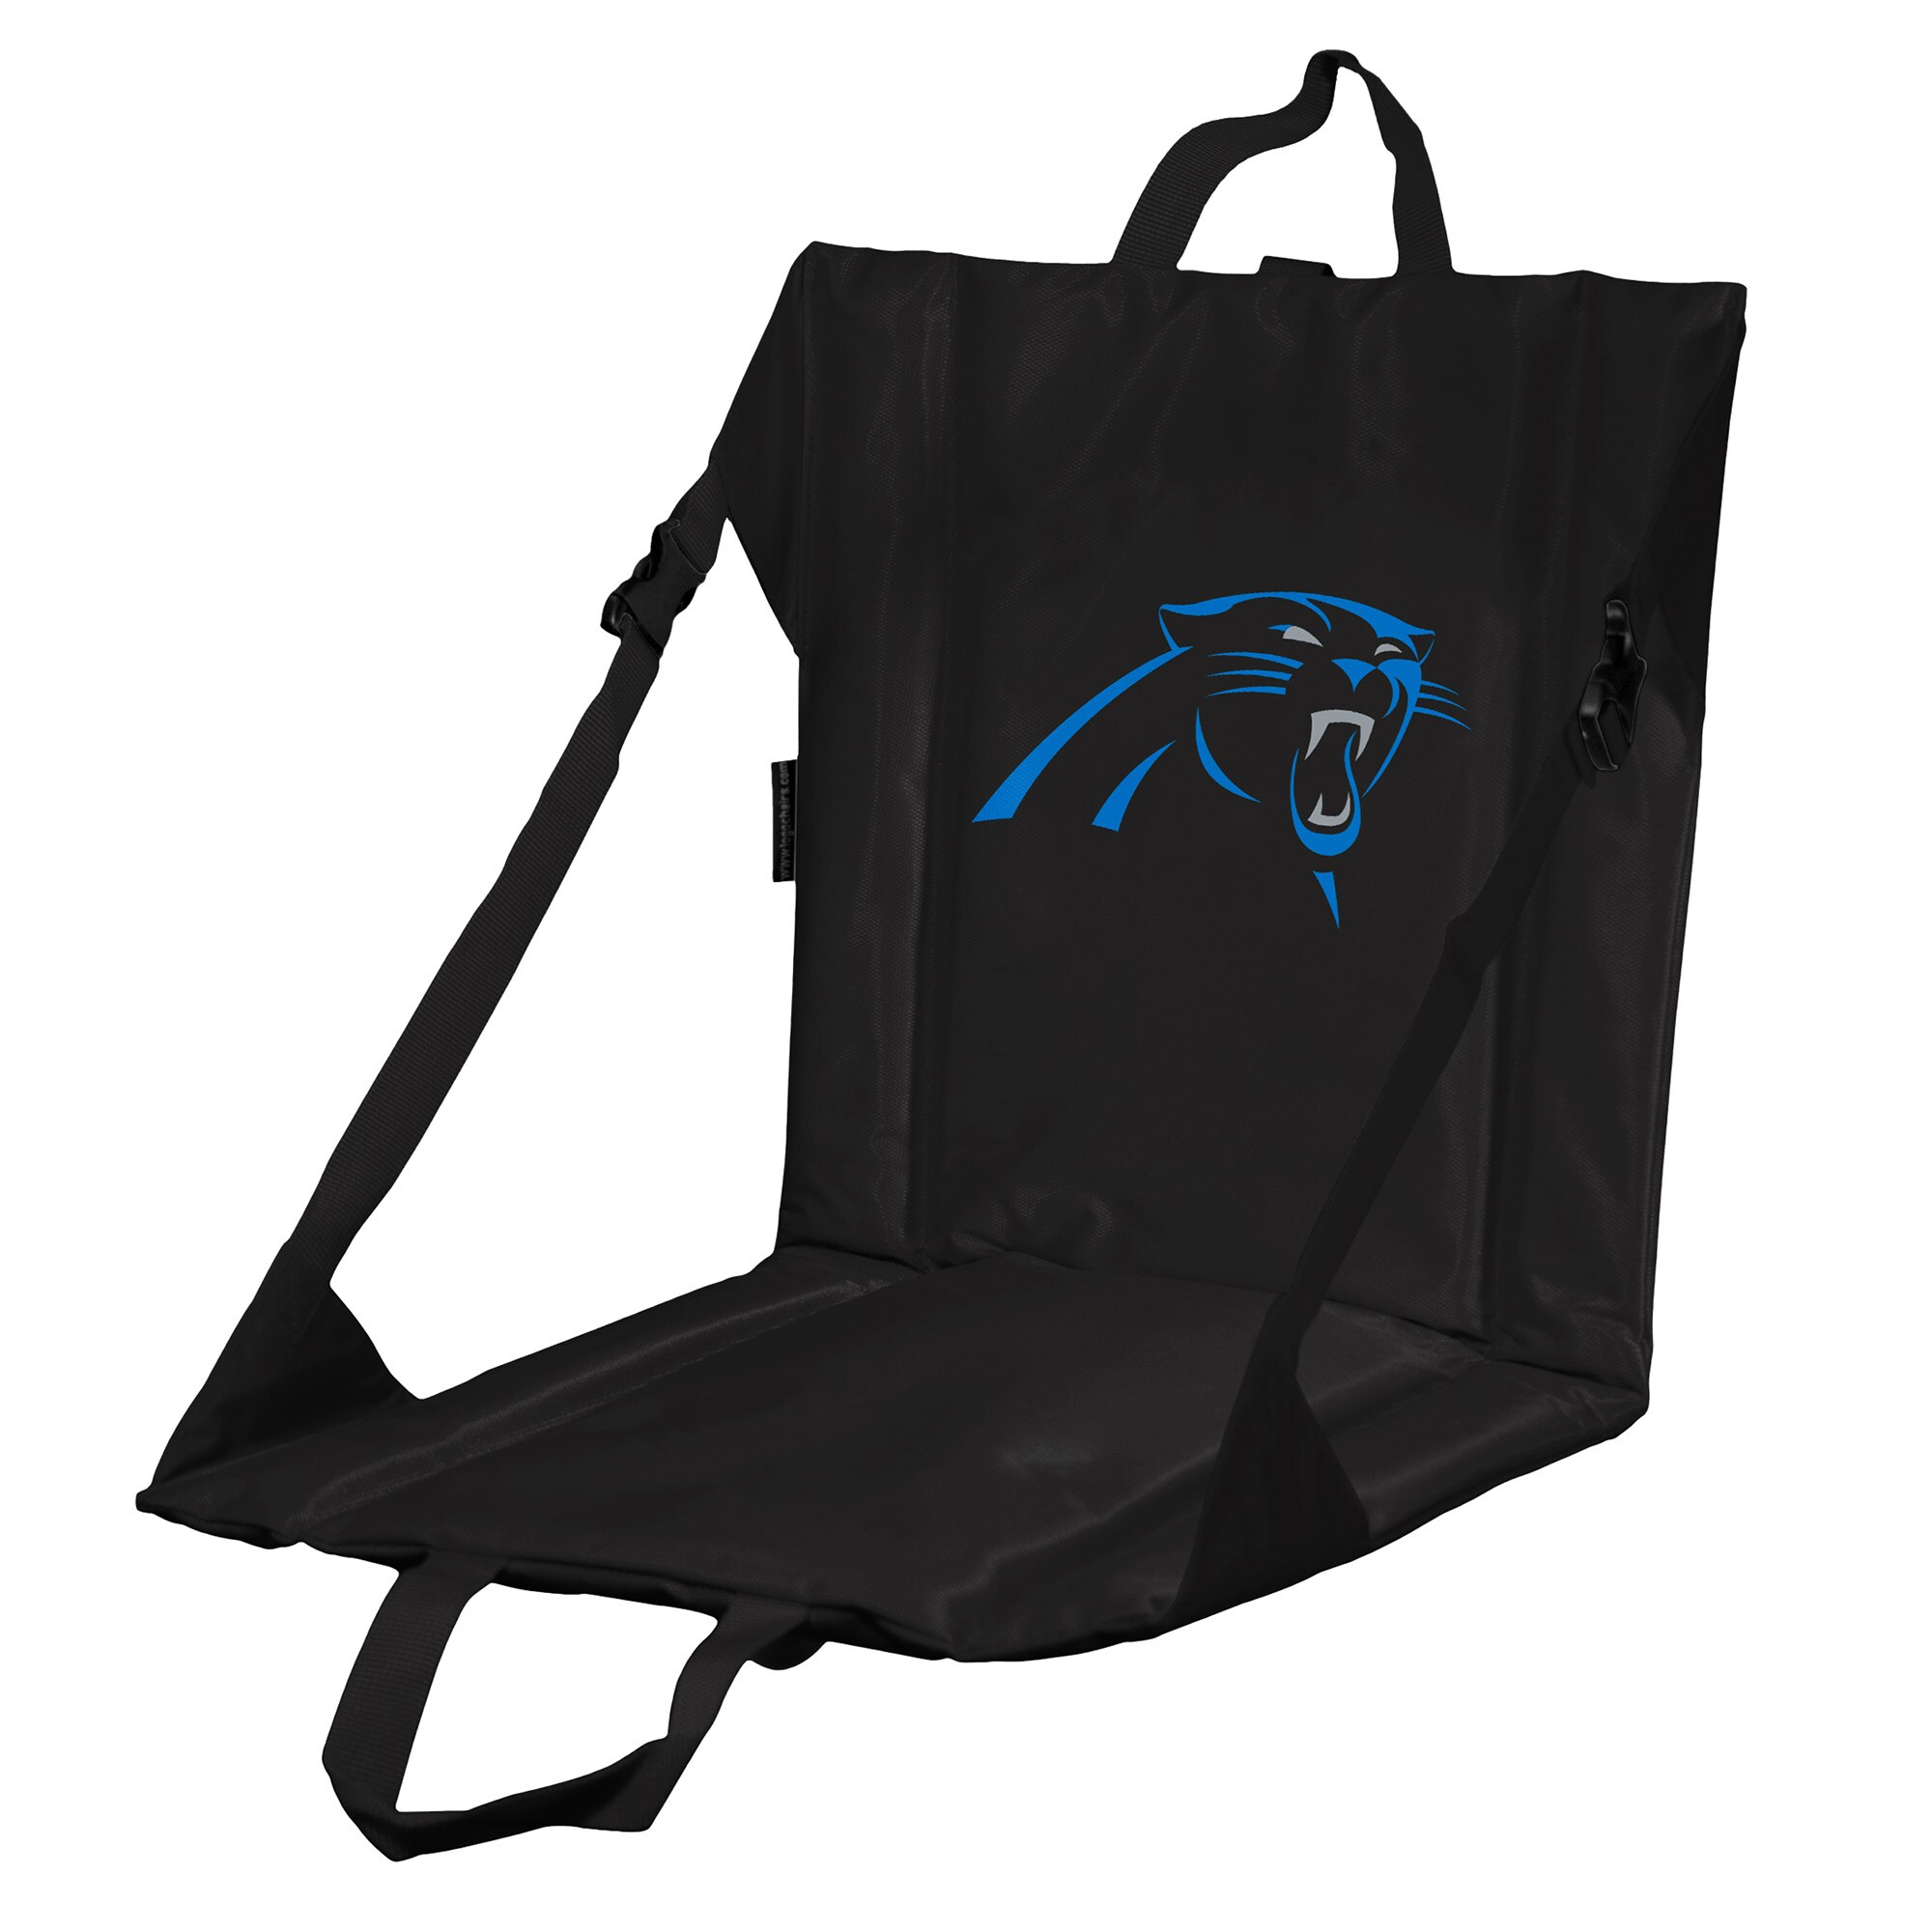 Carolina Panthers Stadium Seat